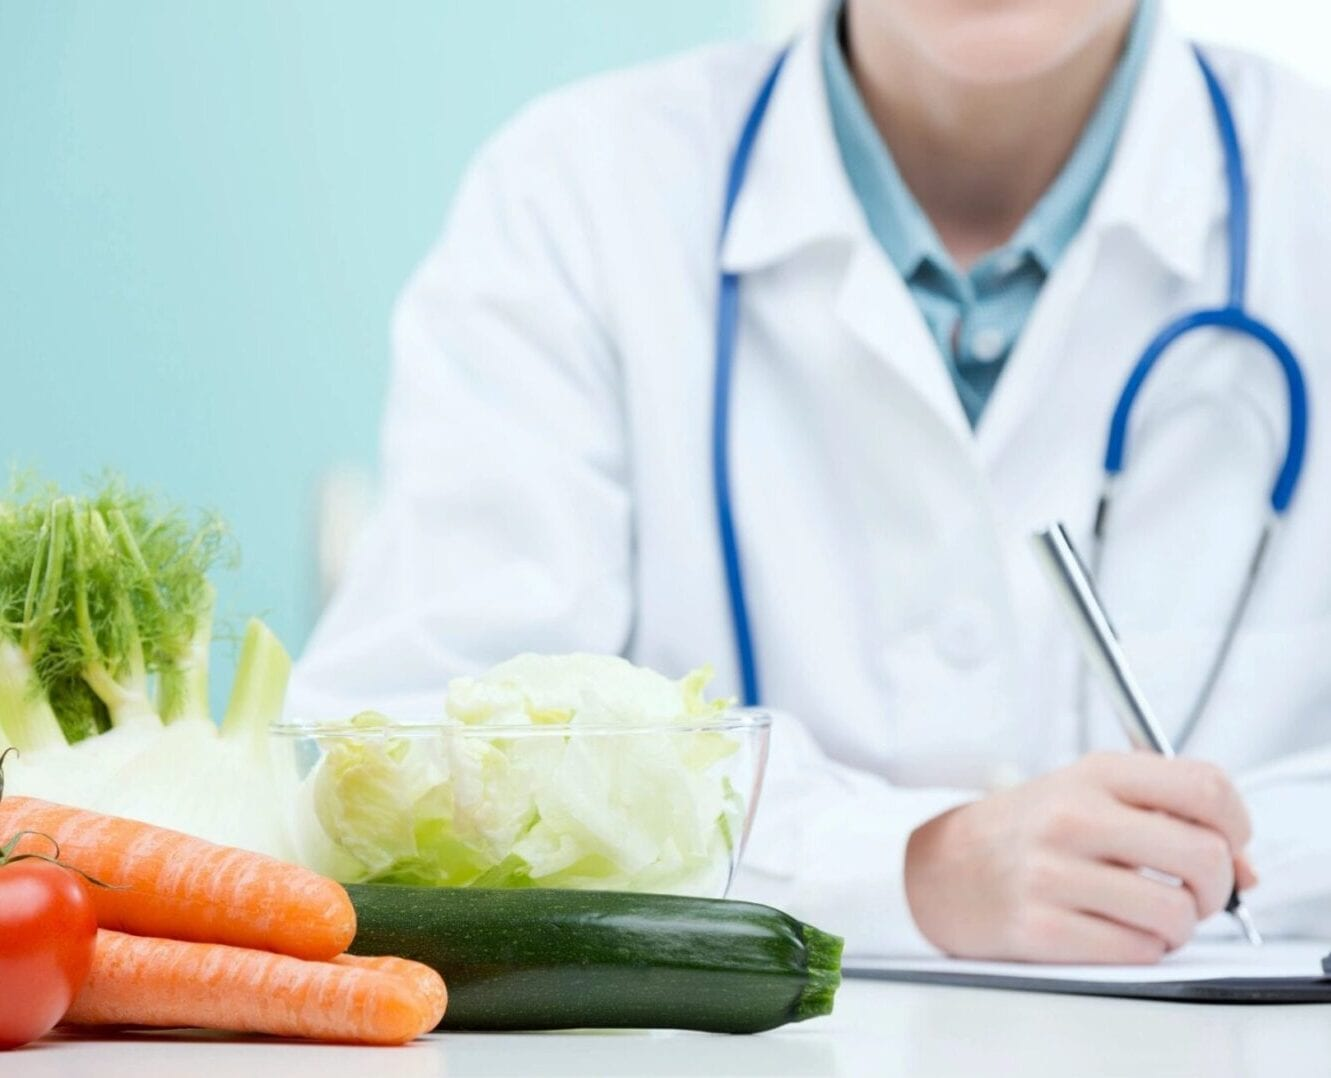 Doctor holding up a pen with vegetables